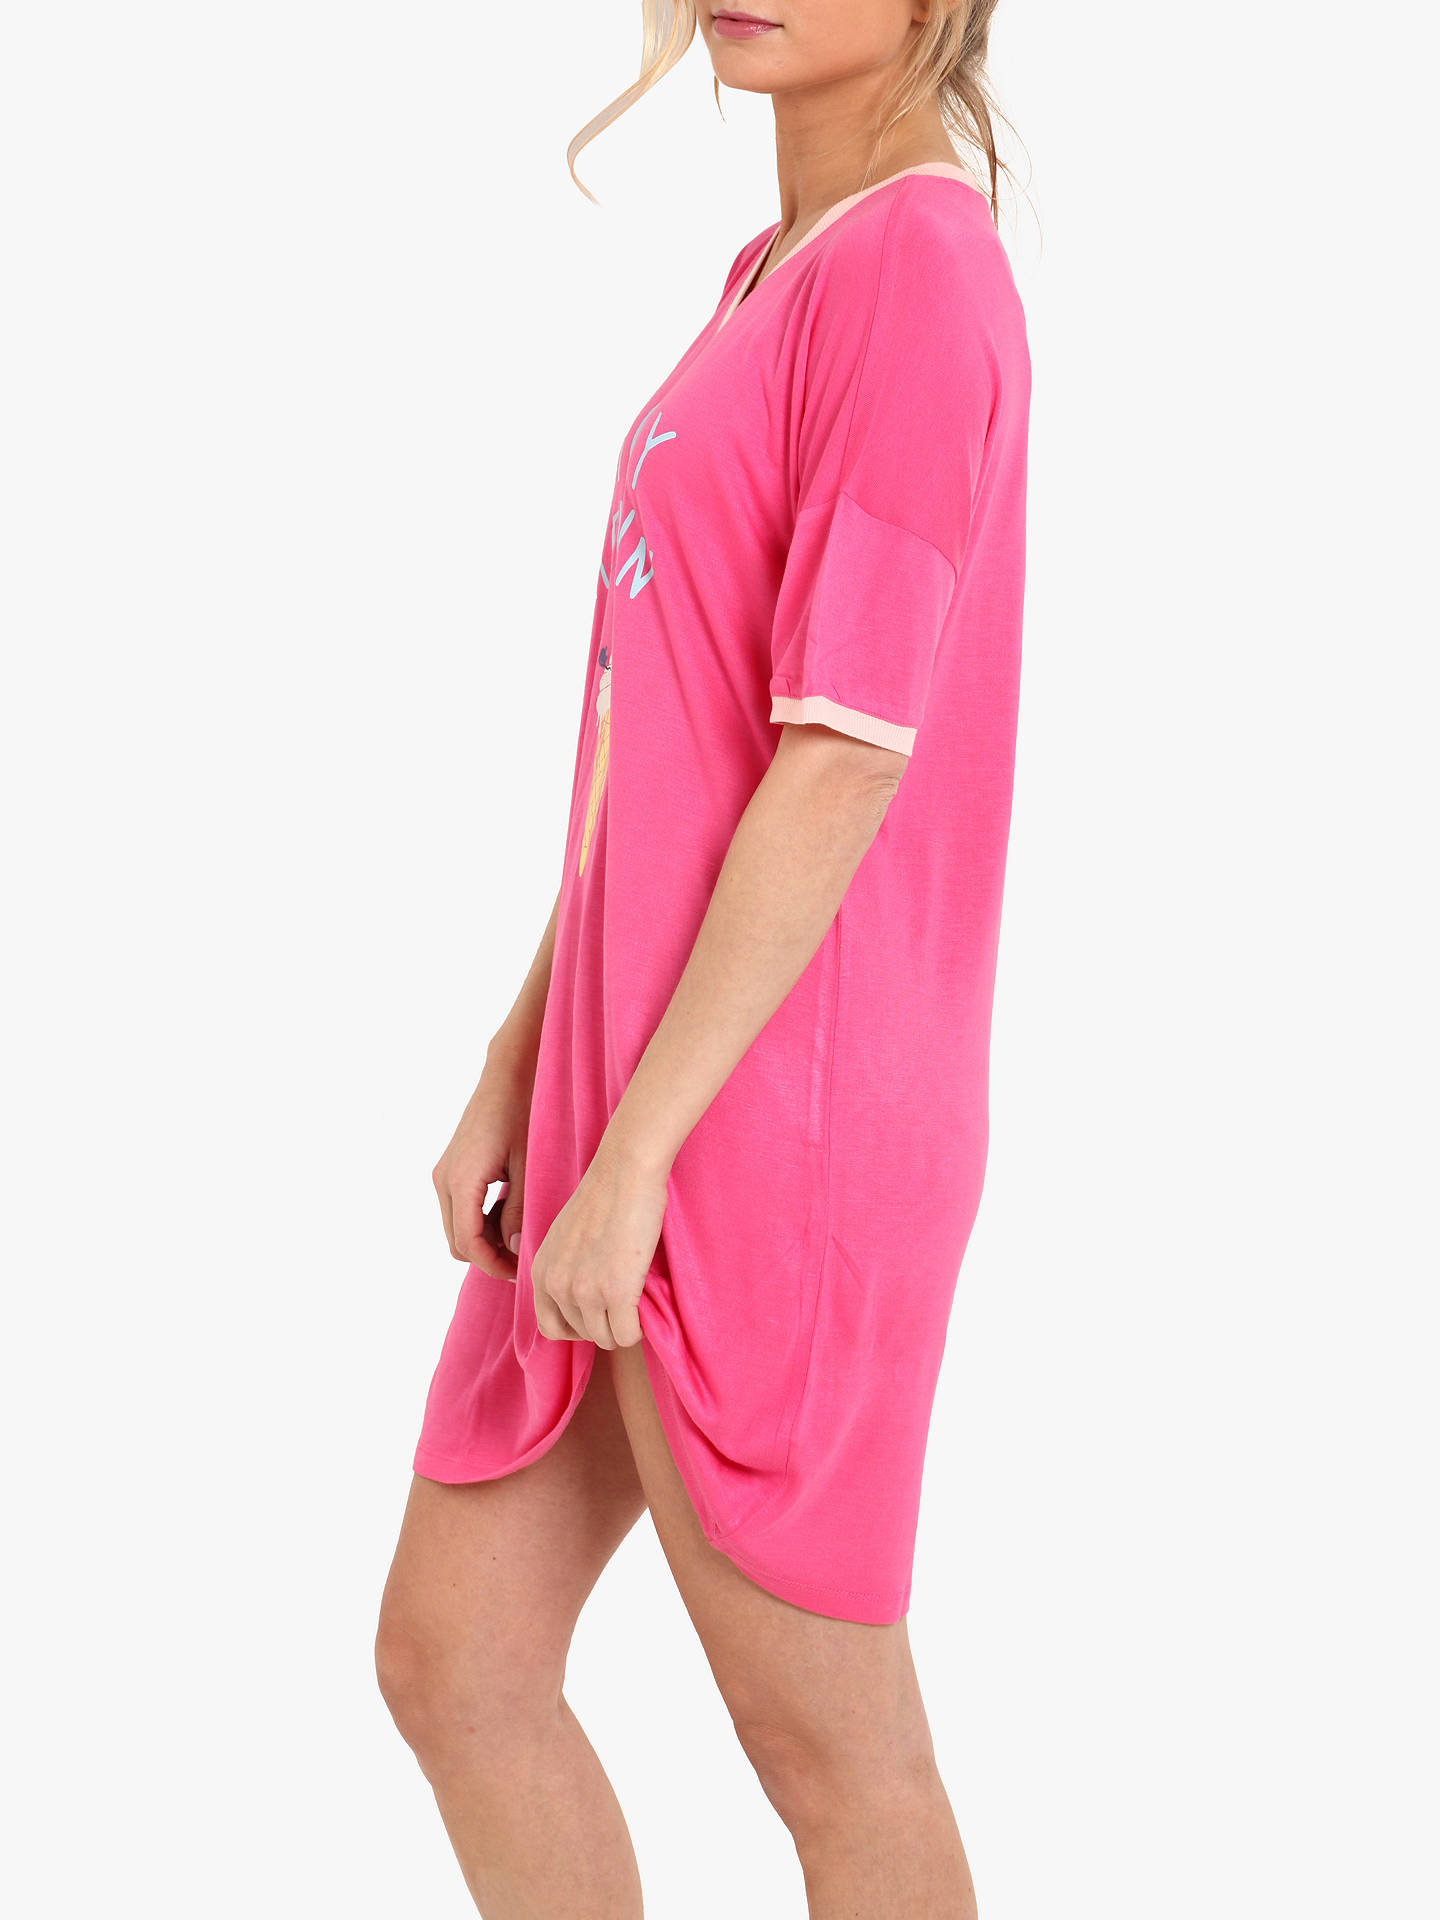 BuyChelsea Peers Monday Meltdown Nightdress, Pink, S Online at johnlewis.com